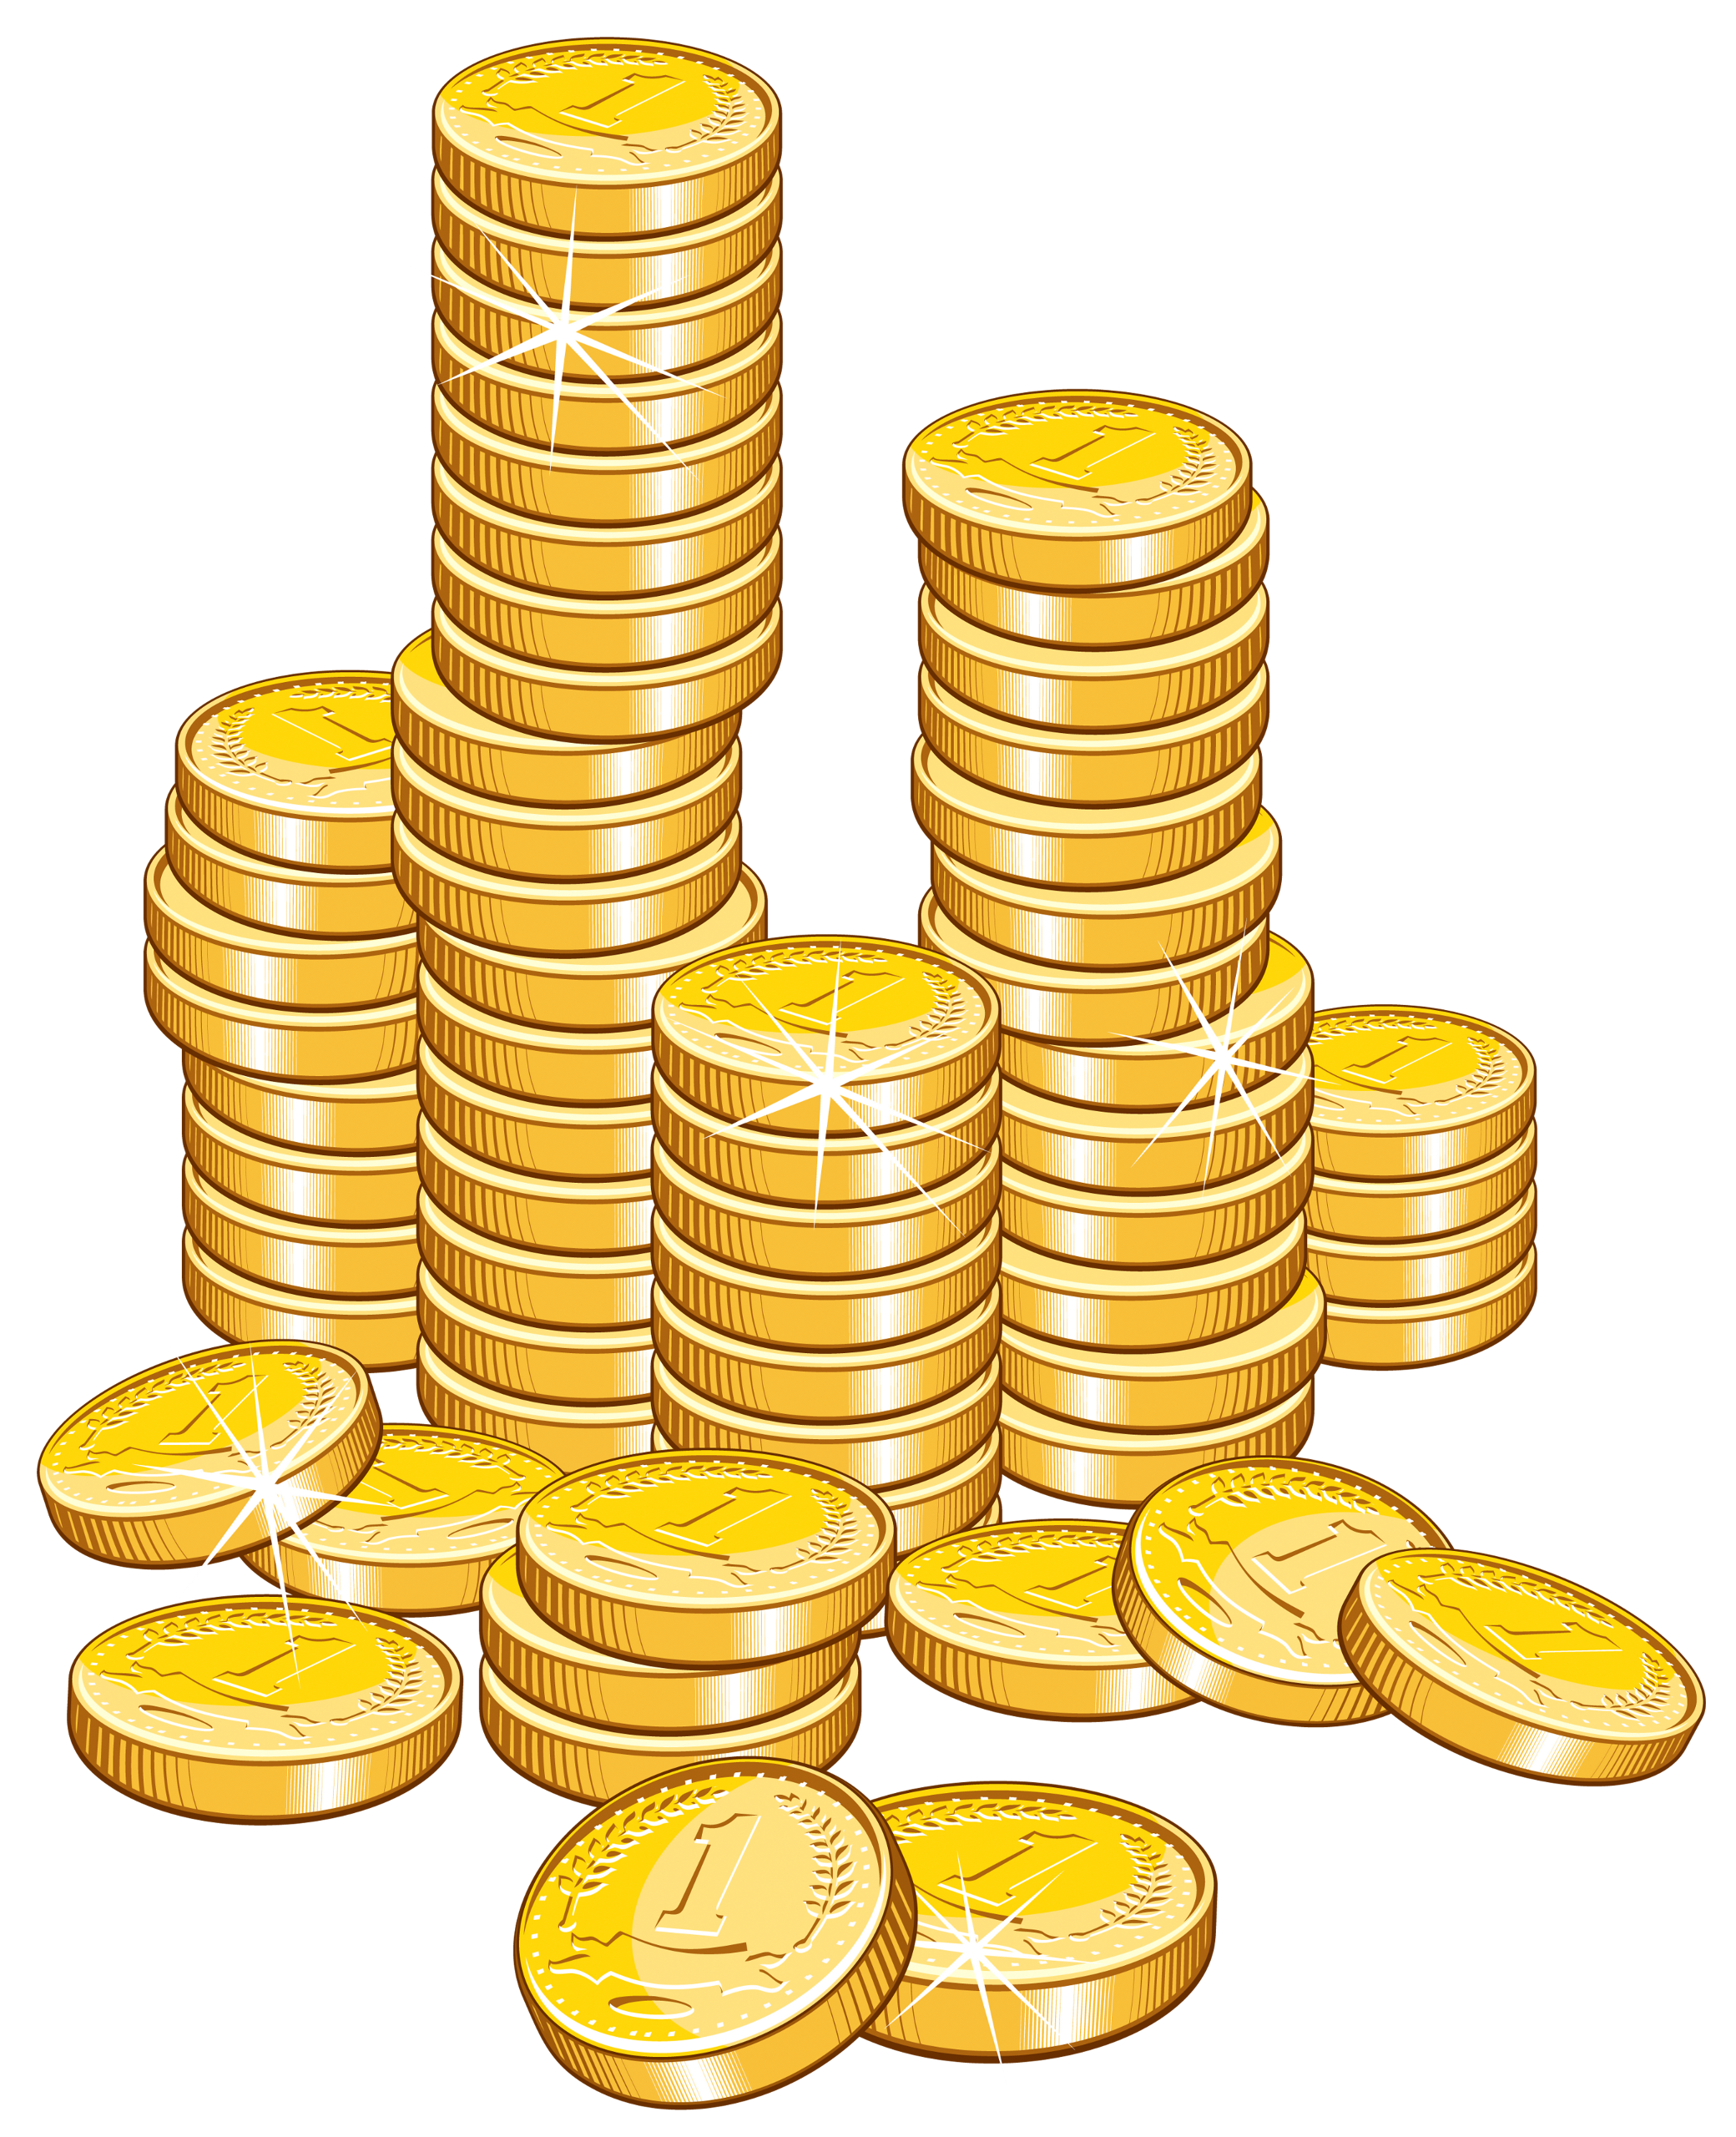 Coins clipart small money. Buy low sell high